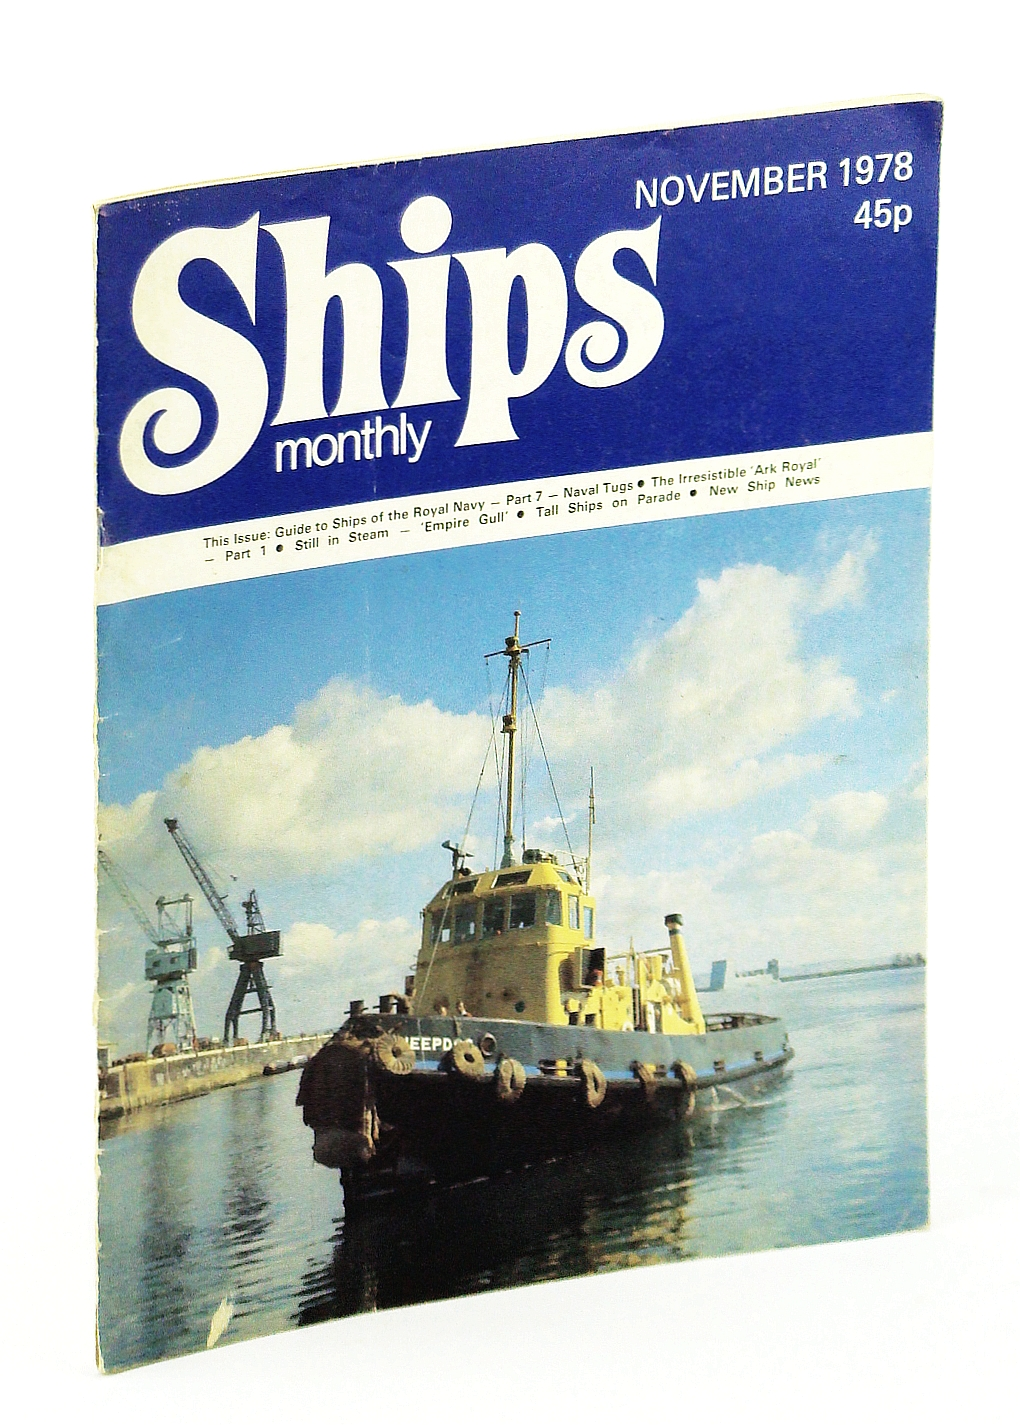 Image for Ships Monthly - The Magazine For Shiplovers Ashore and Afloat, November 1978 - The Irresistible Ark Royal (Part 1)